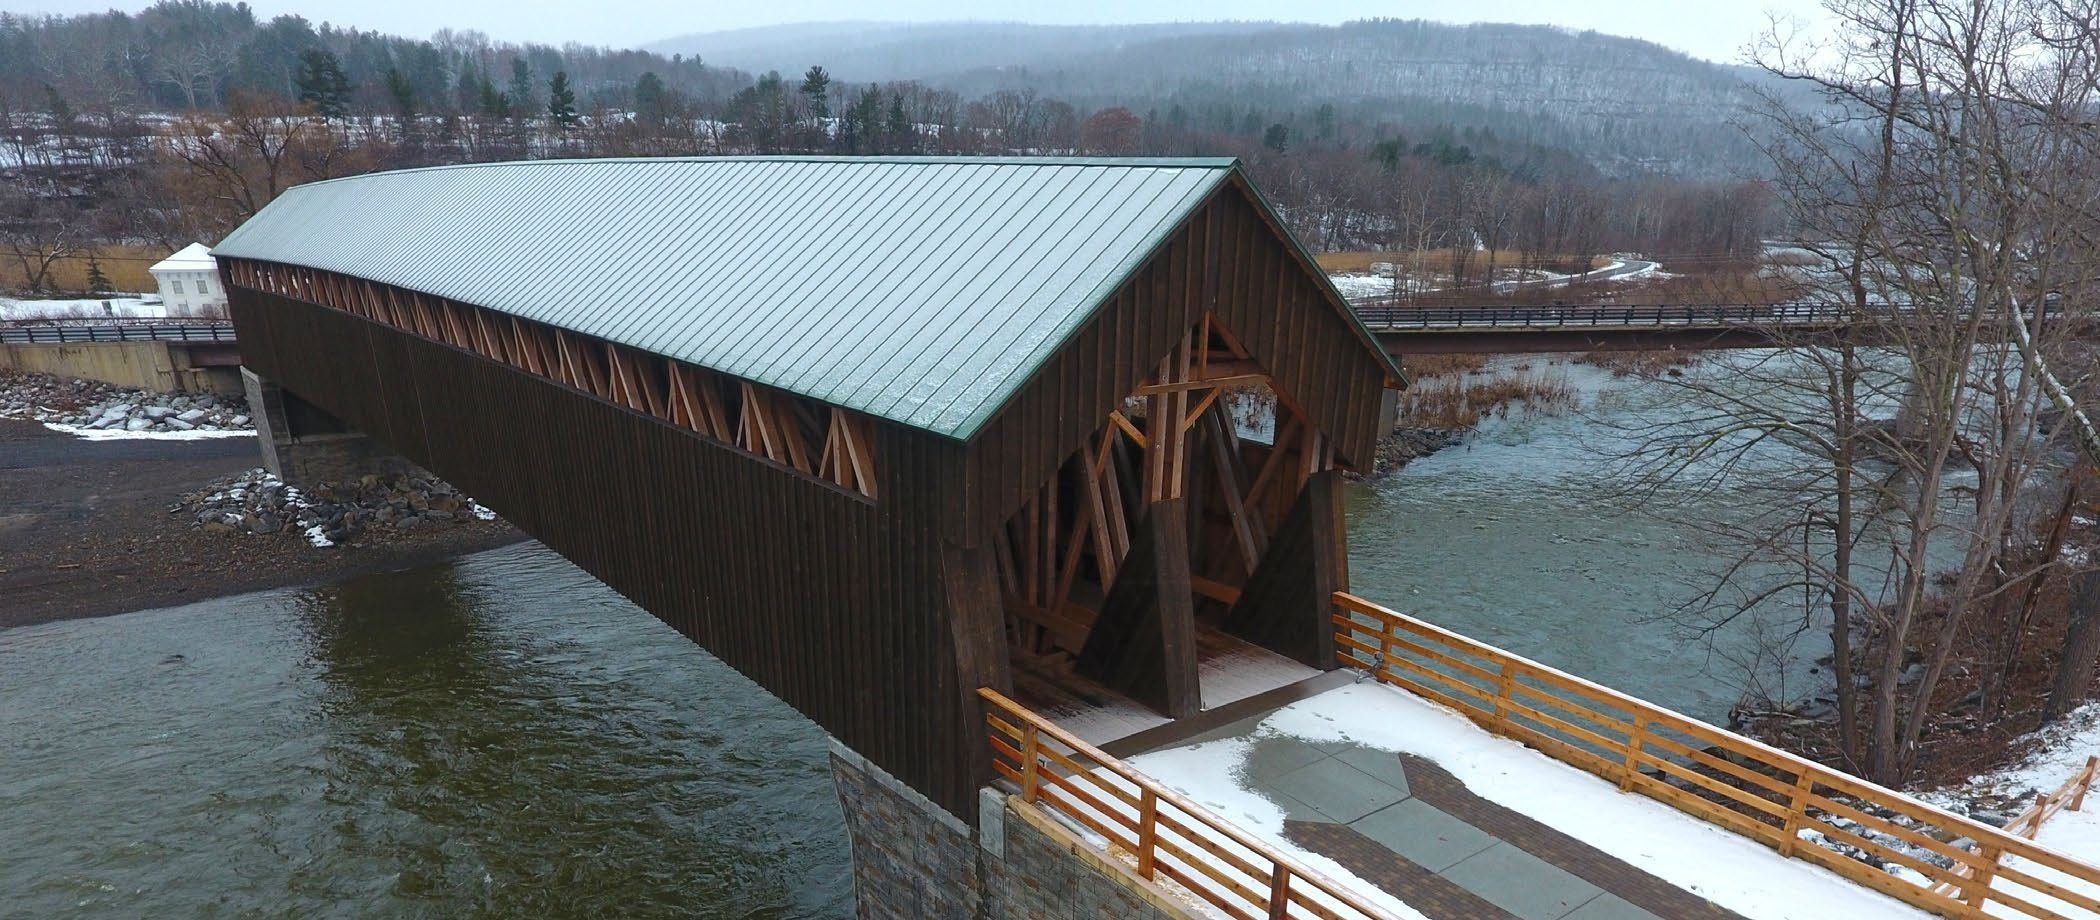 images/ABCD_Blenheim_Covered_Bridge.jpg